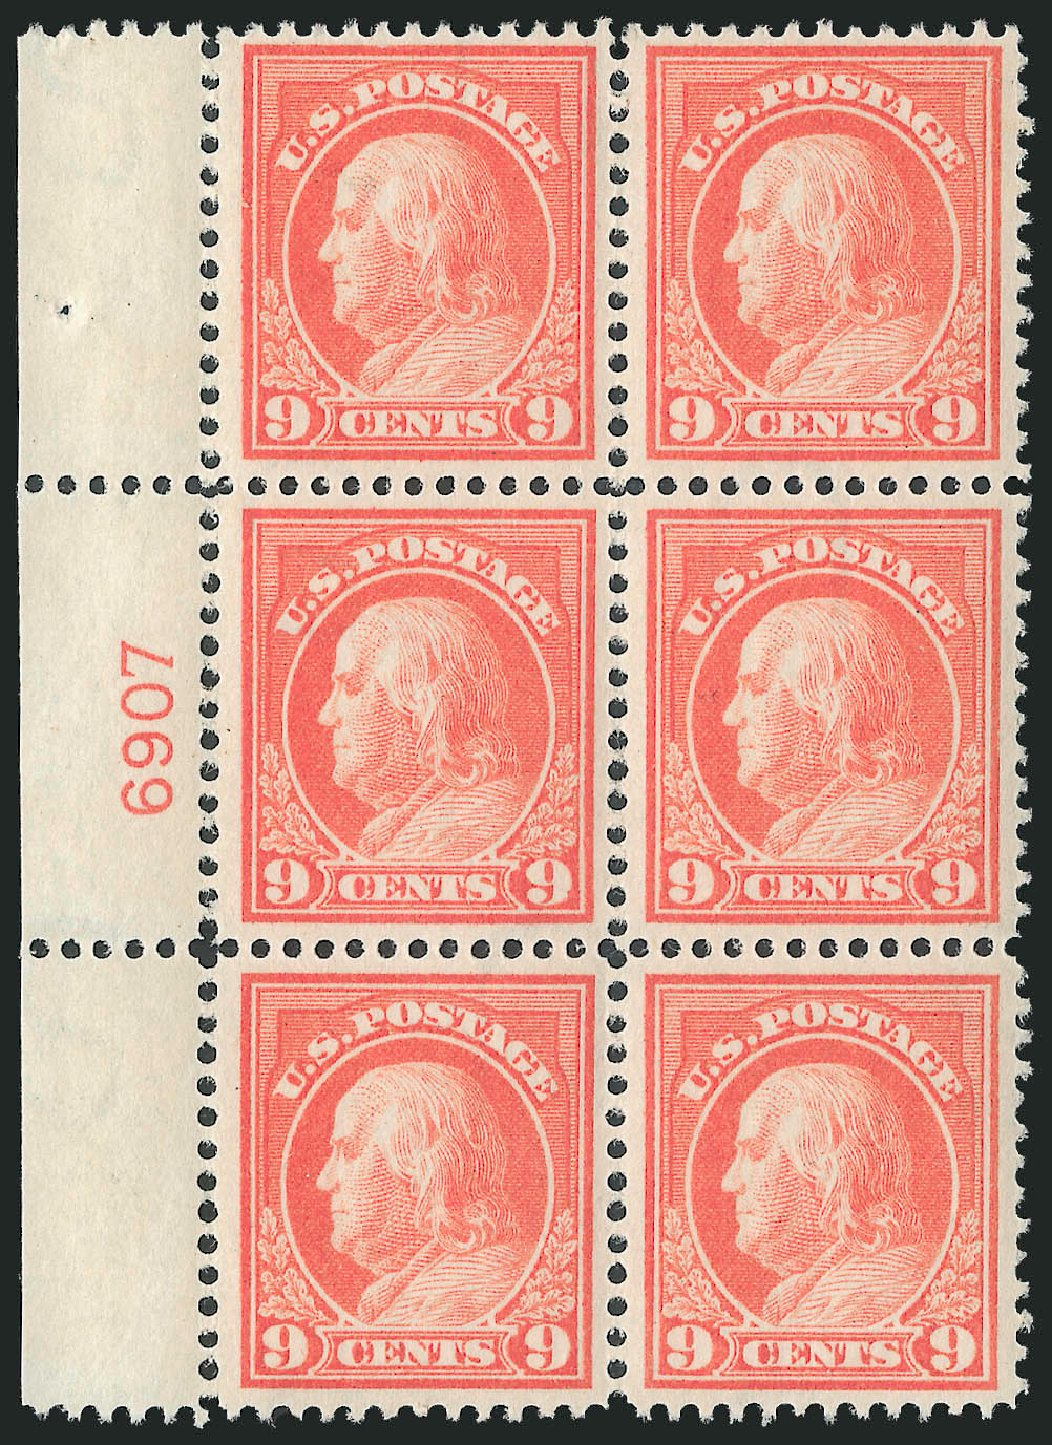 US Stamps Value Scott Catalogue # 415 - 9c 1914 Franklin Perf 12. Robert Siegel Auction Galleries, Mar 2013, Sale 1040, Lot 1787